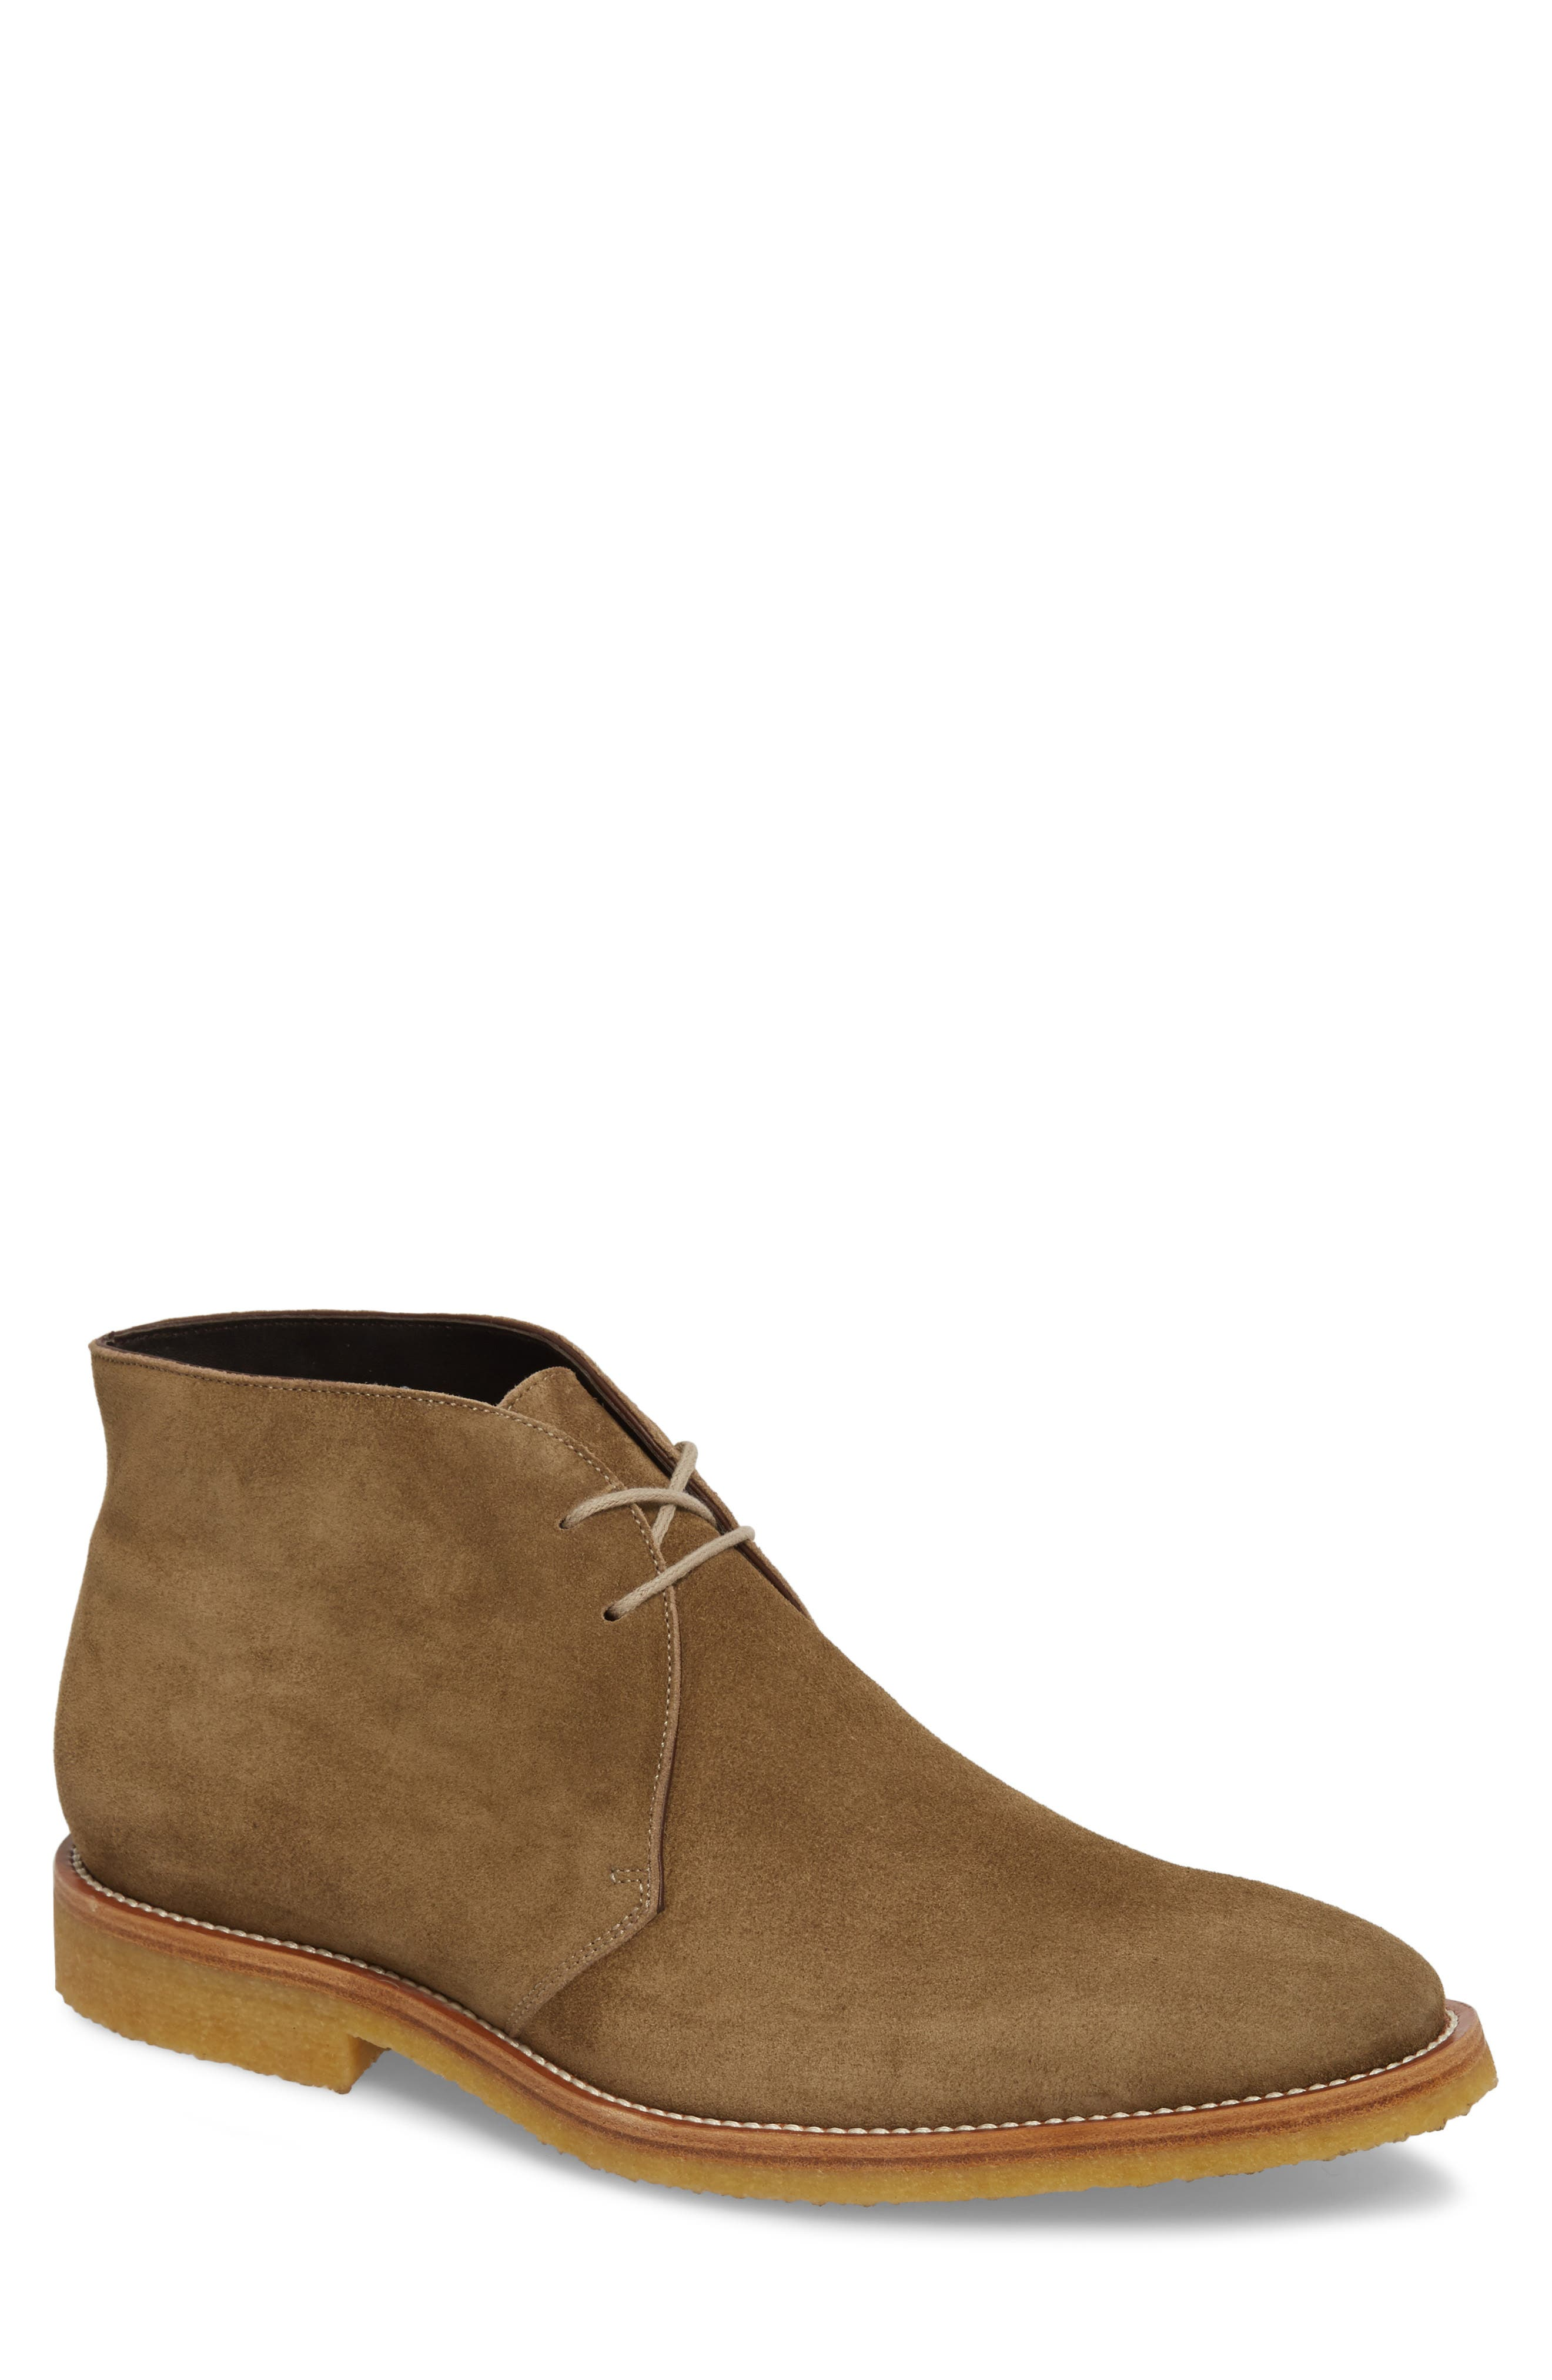 Banker Chukka Boot,                             Main thumbnail 1, color,                             Taupe Suede